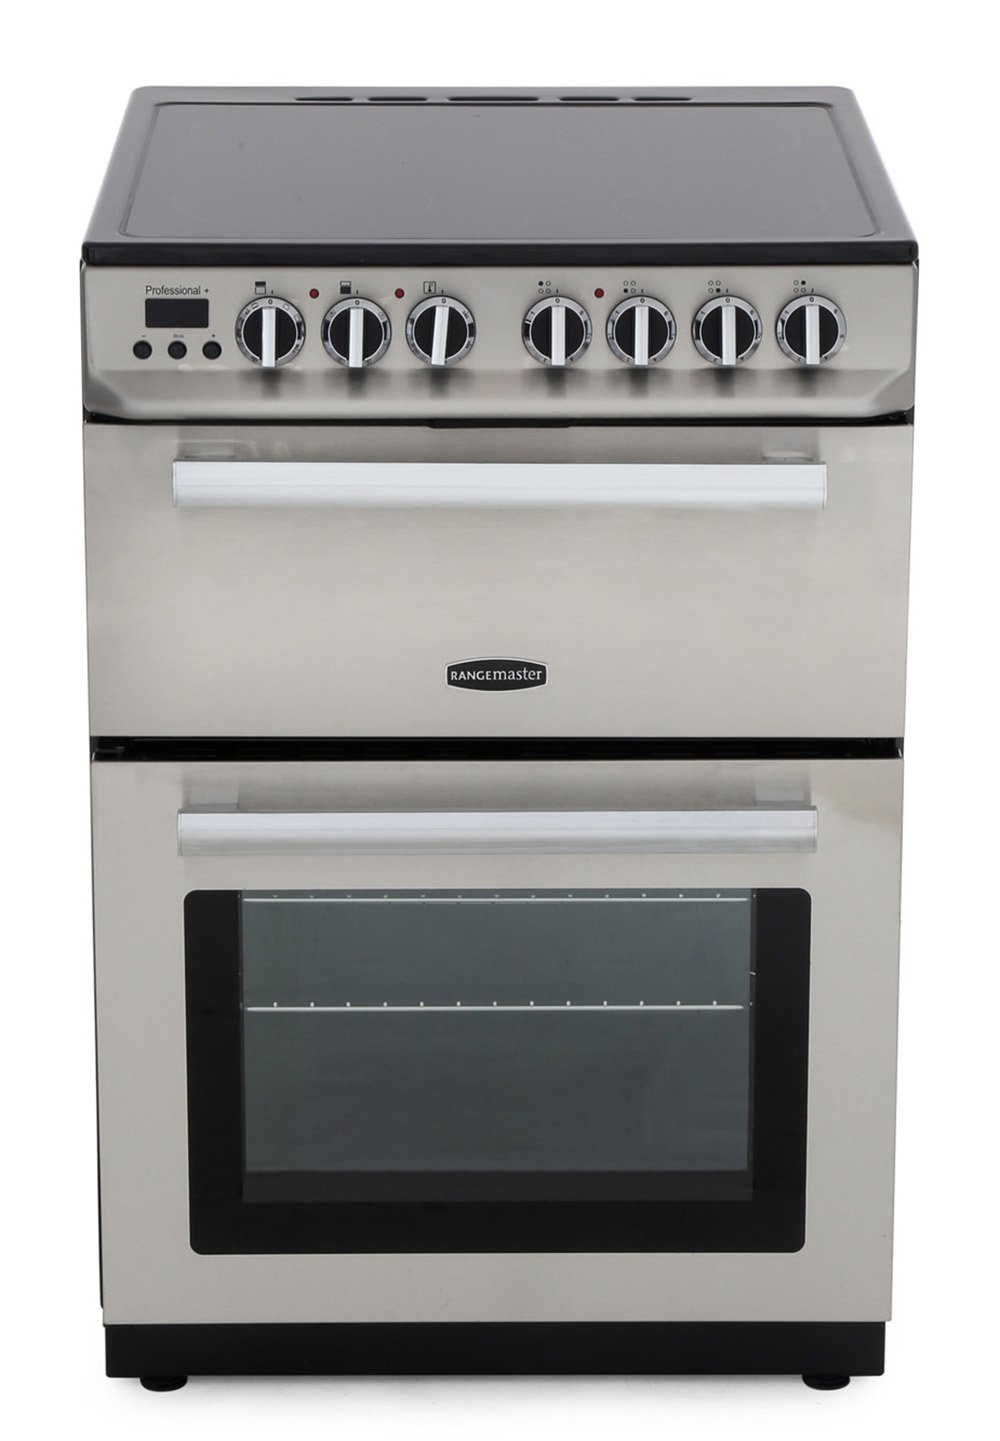 Rangemaster PROP60ECSS/C Professional Plus 60 Stainless Steel with Chrome Trim Ceramic Electric Cooker with Double Oven